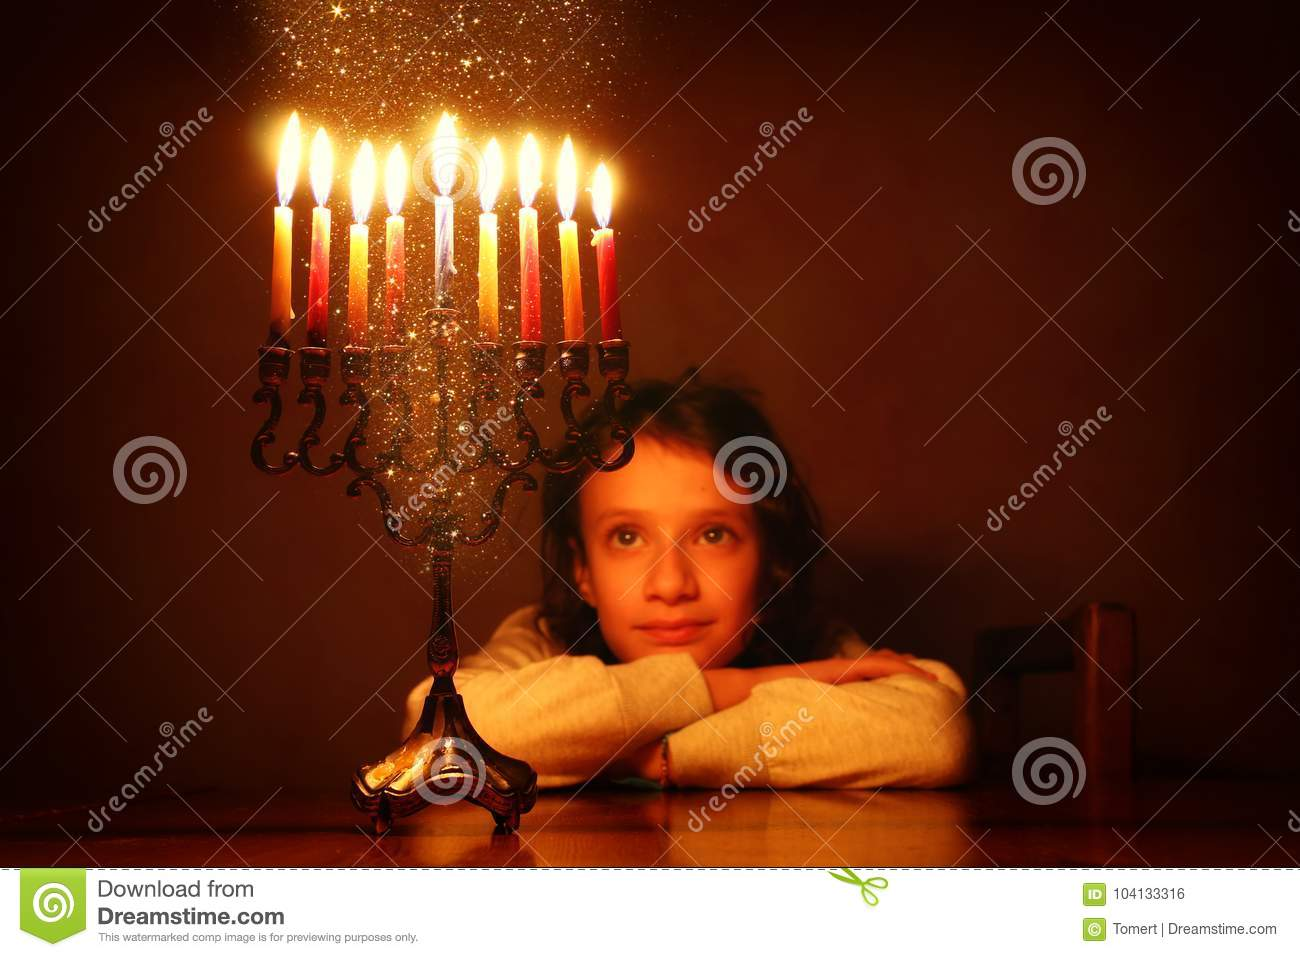 Low key image of jewish holiday Hanukkah background with cute girl looking at menorah & x28;traditional candelabra& x29;